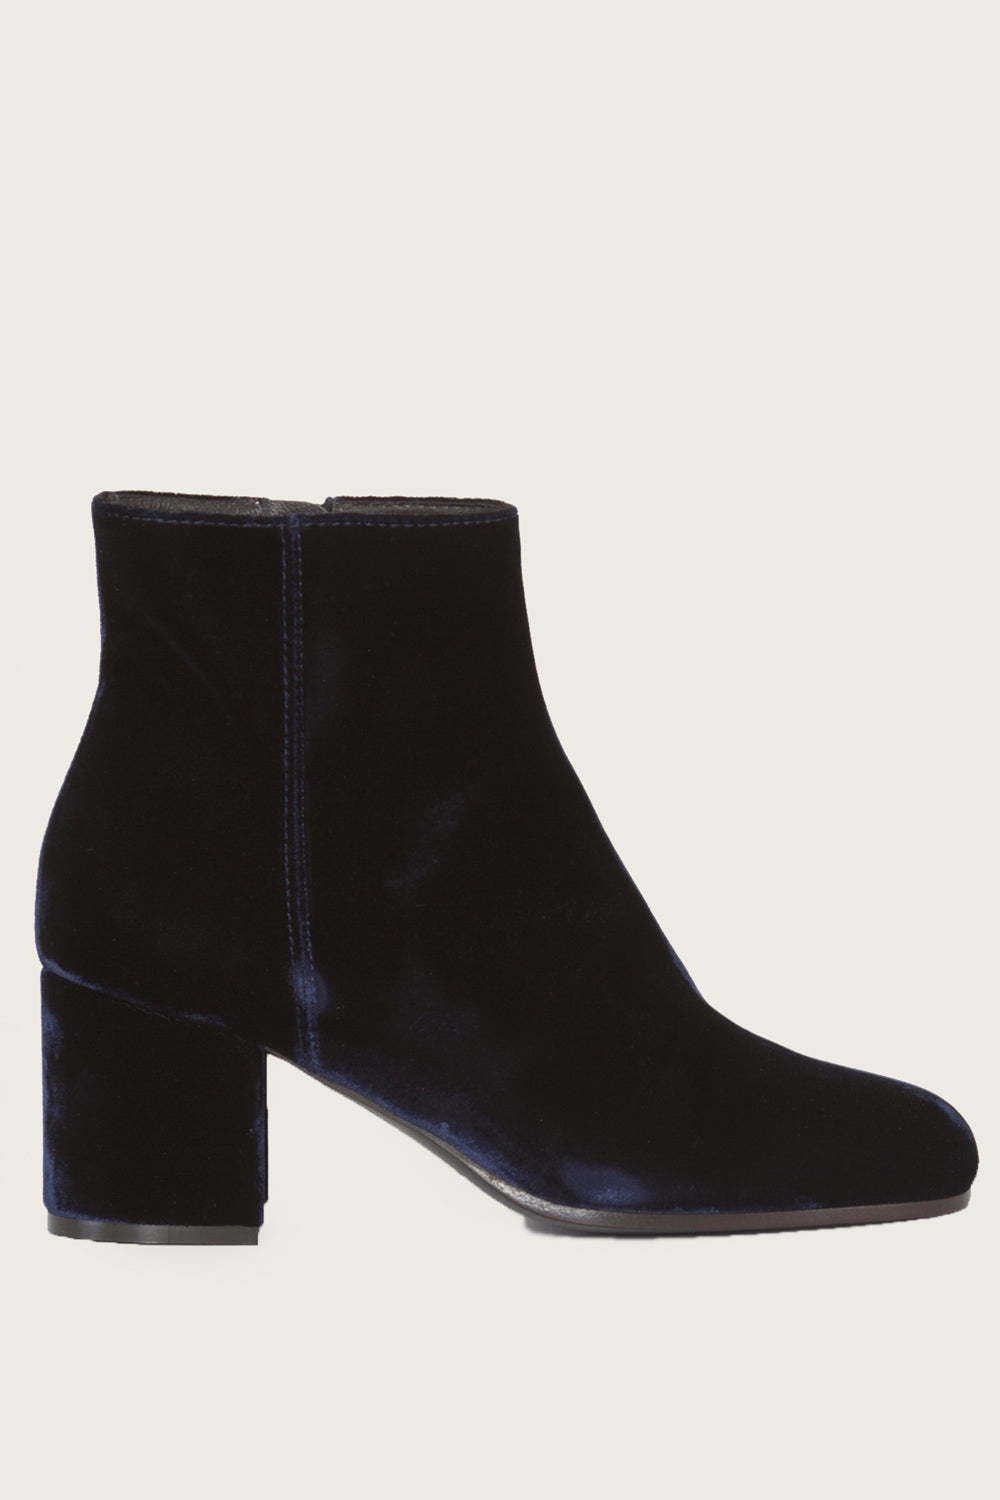 MADISON ET CIEMIA VELVET BOOTIES27675